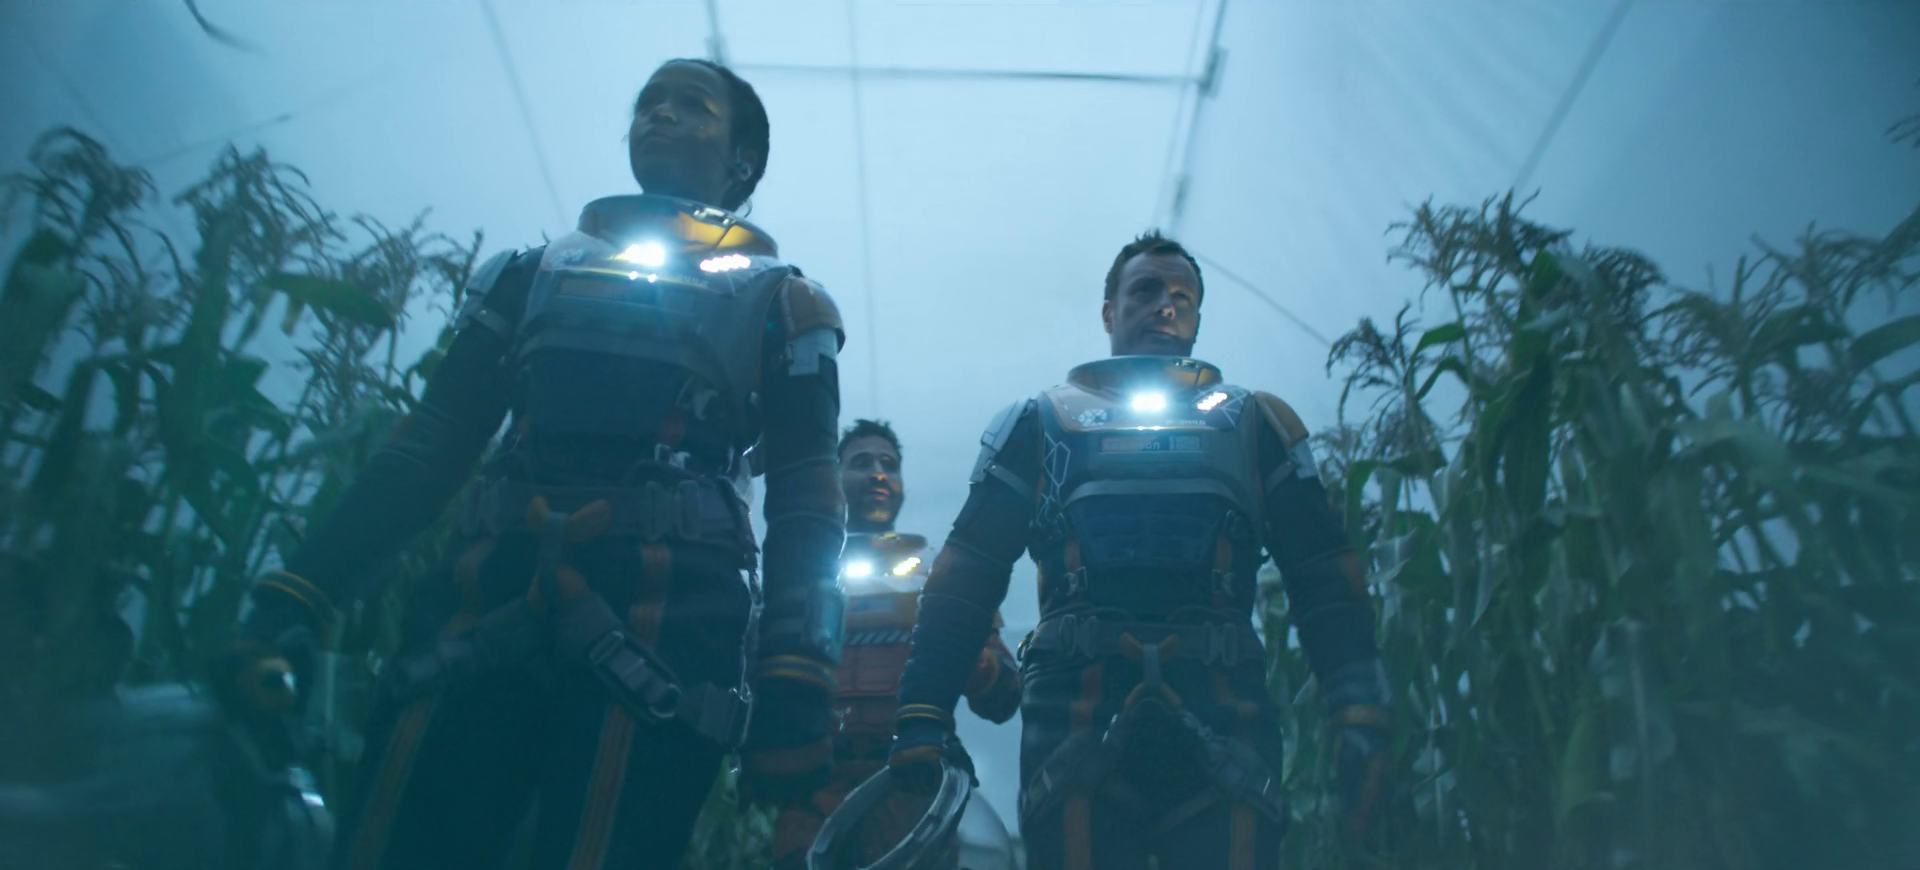 Lost In Space - Stagione 2 (2019) (Completa) WEBRip 1080P HEVC ITA ENG AC3 x265 mkv Vlcsnap-2019-12-29-15jajzi